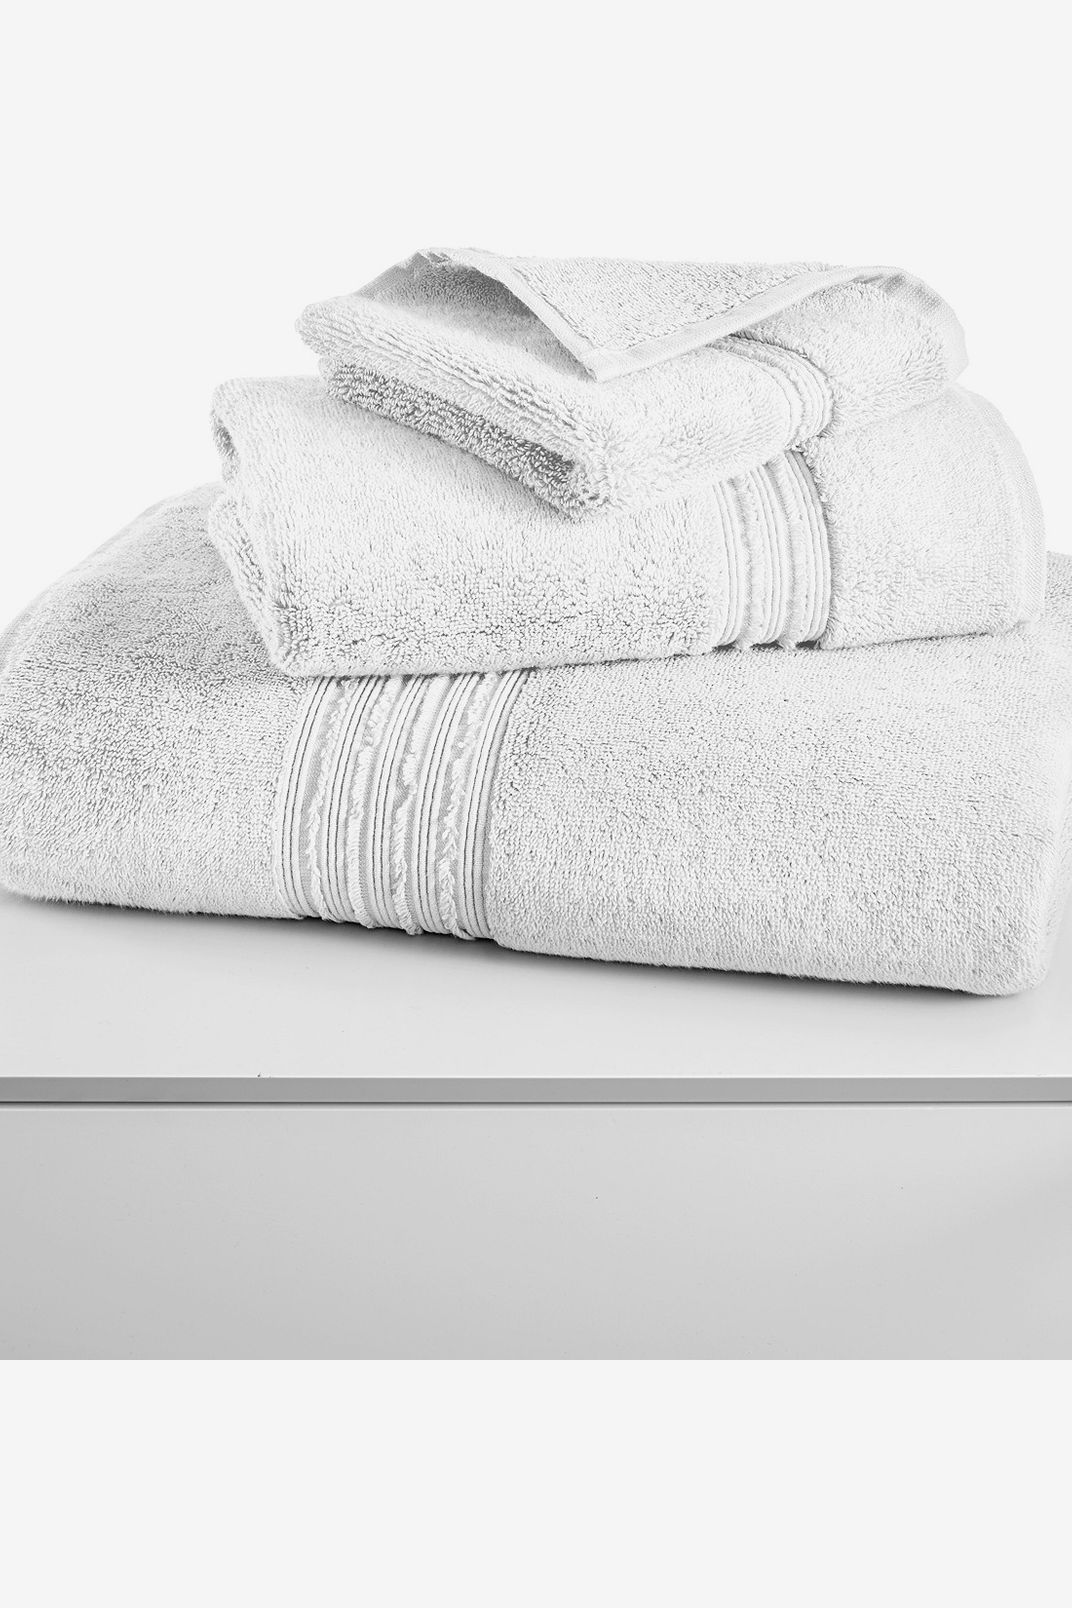 Hotel Collection Turkish 30 X 56 Bath Towel At Macys